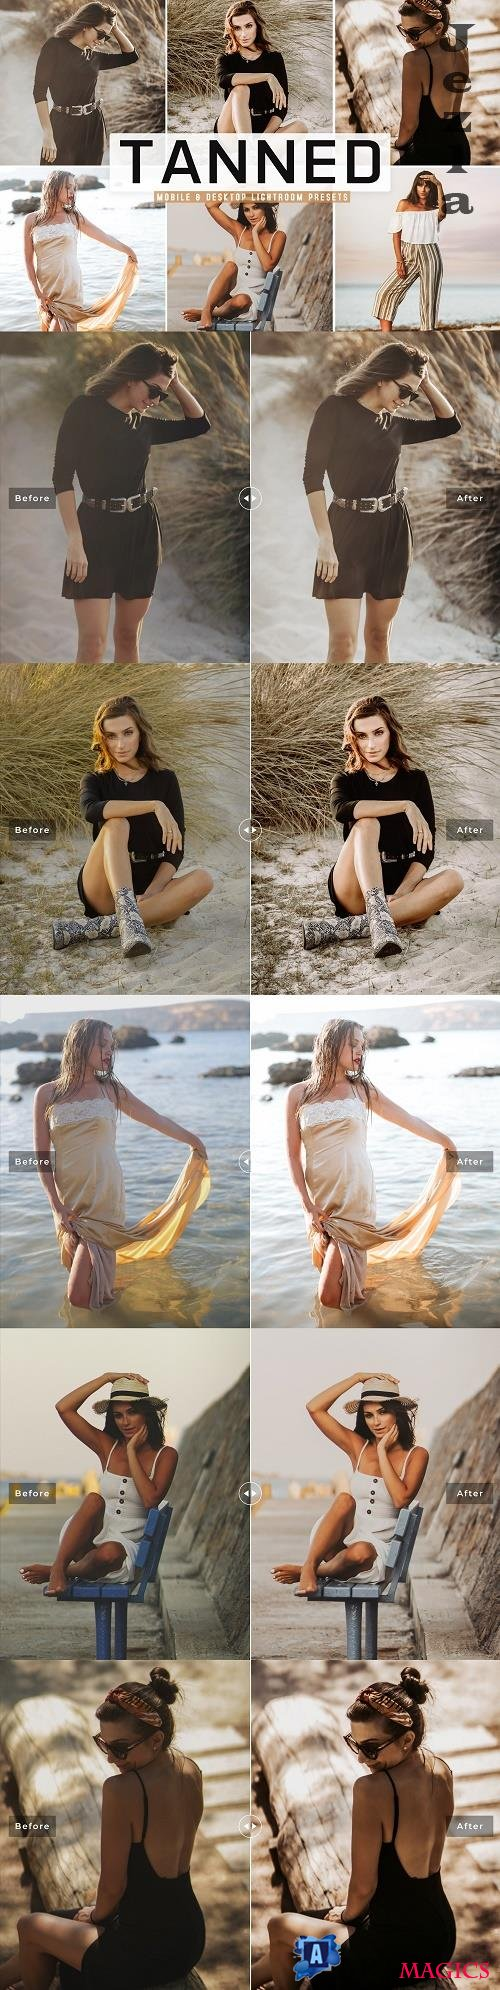 Tanned Lightroom Presets Pack - 4785804 - Mobile & Desktop